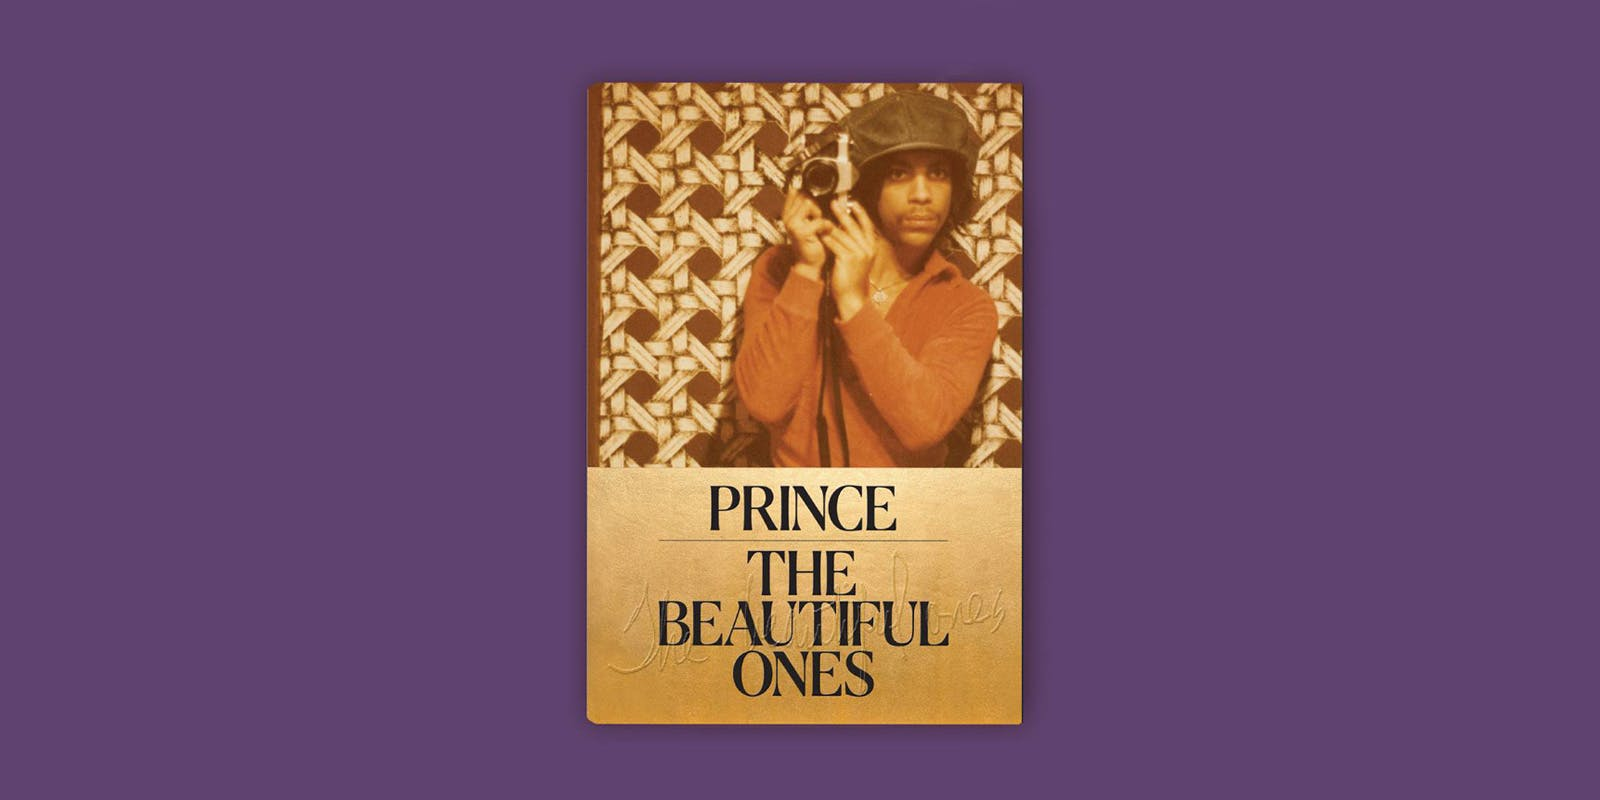 Announcing The Beautiful Ones by Prince